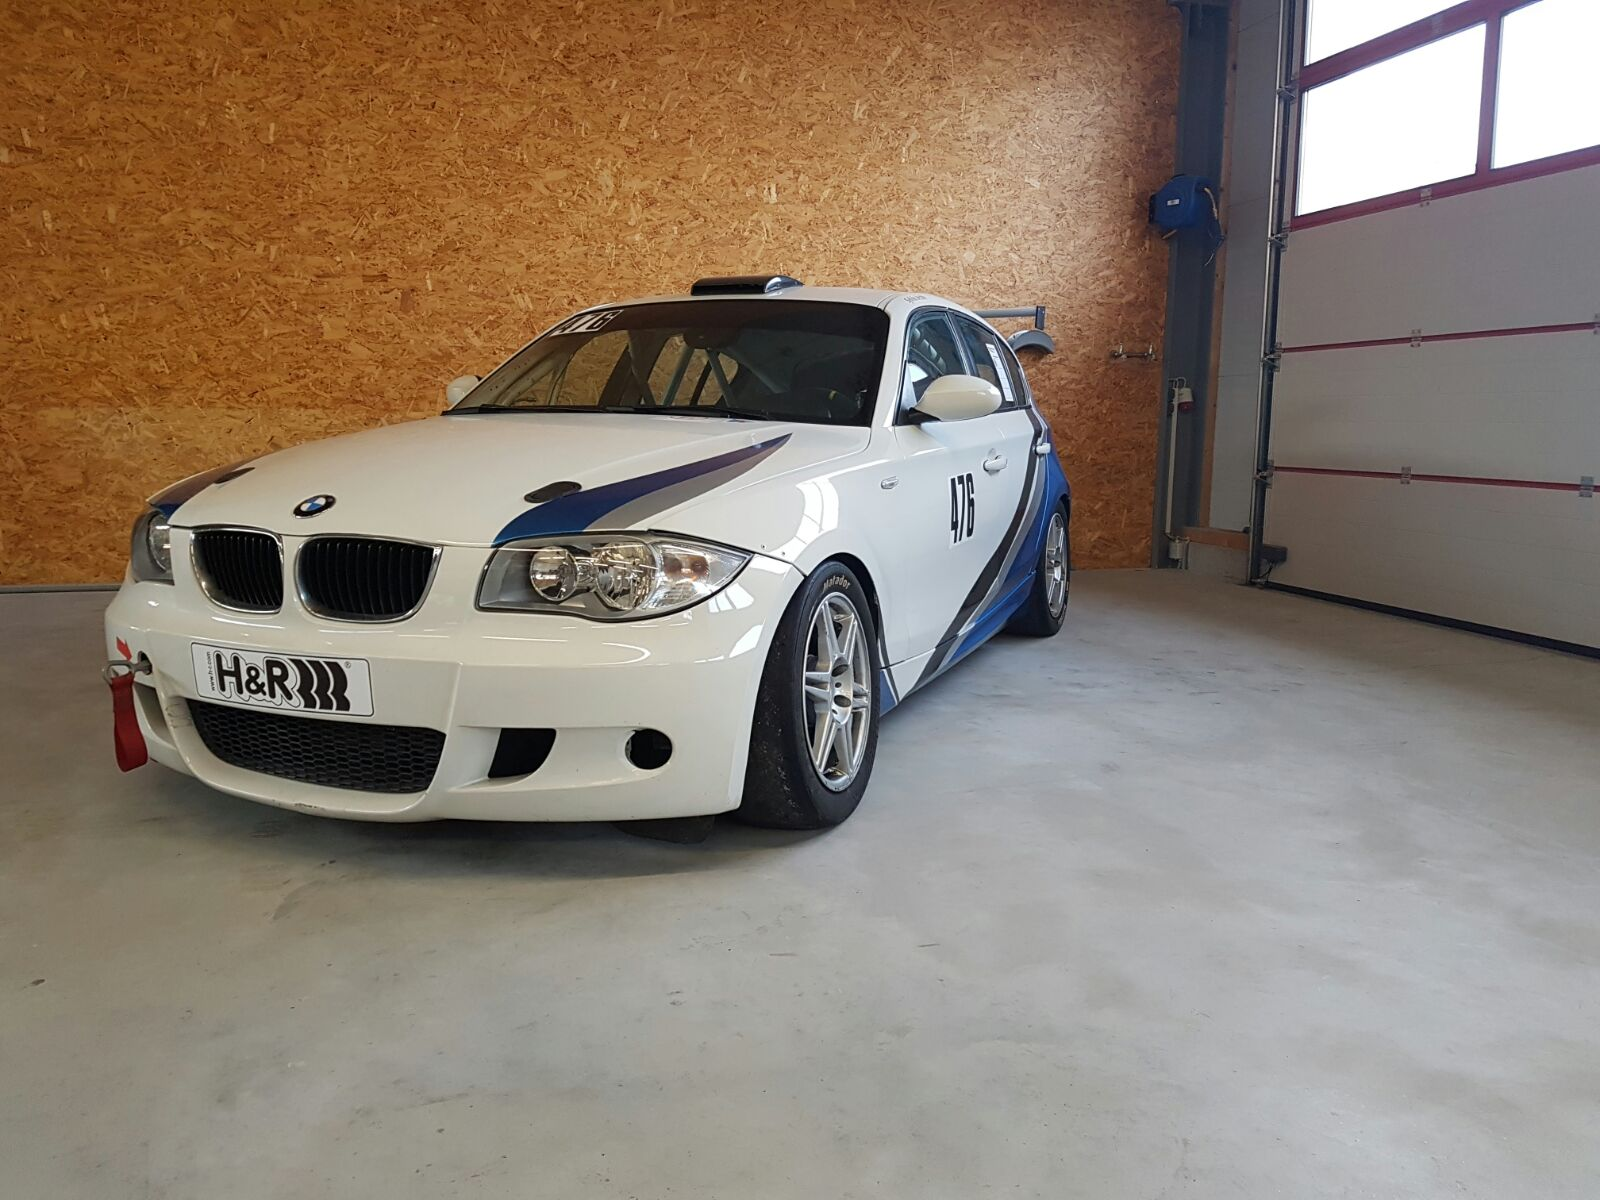 bmw 120d e87 240 hp for sale bmw m tuning teile f r m3. Black Bedroom Furniture Sets. Home Design Ideas